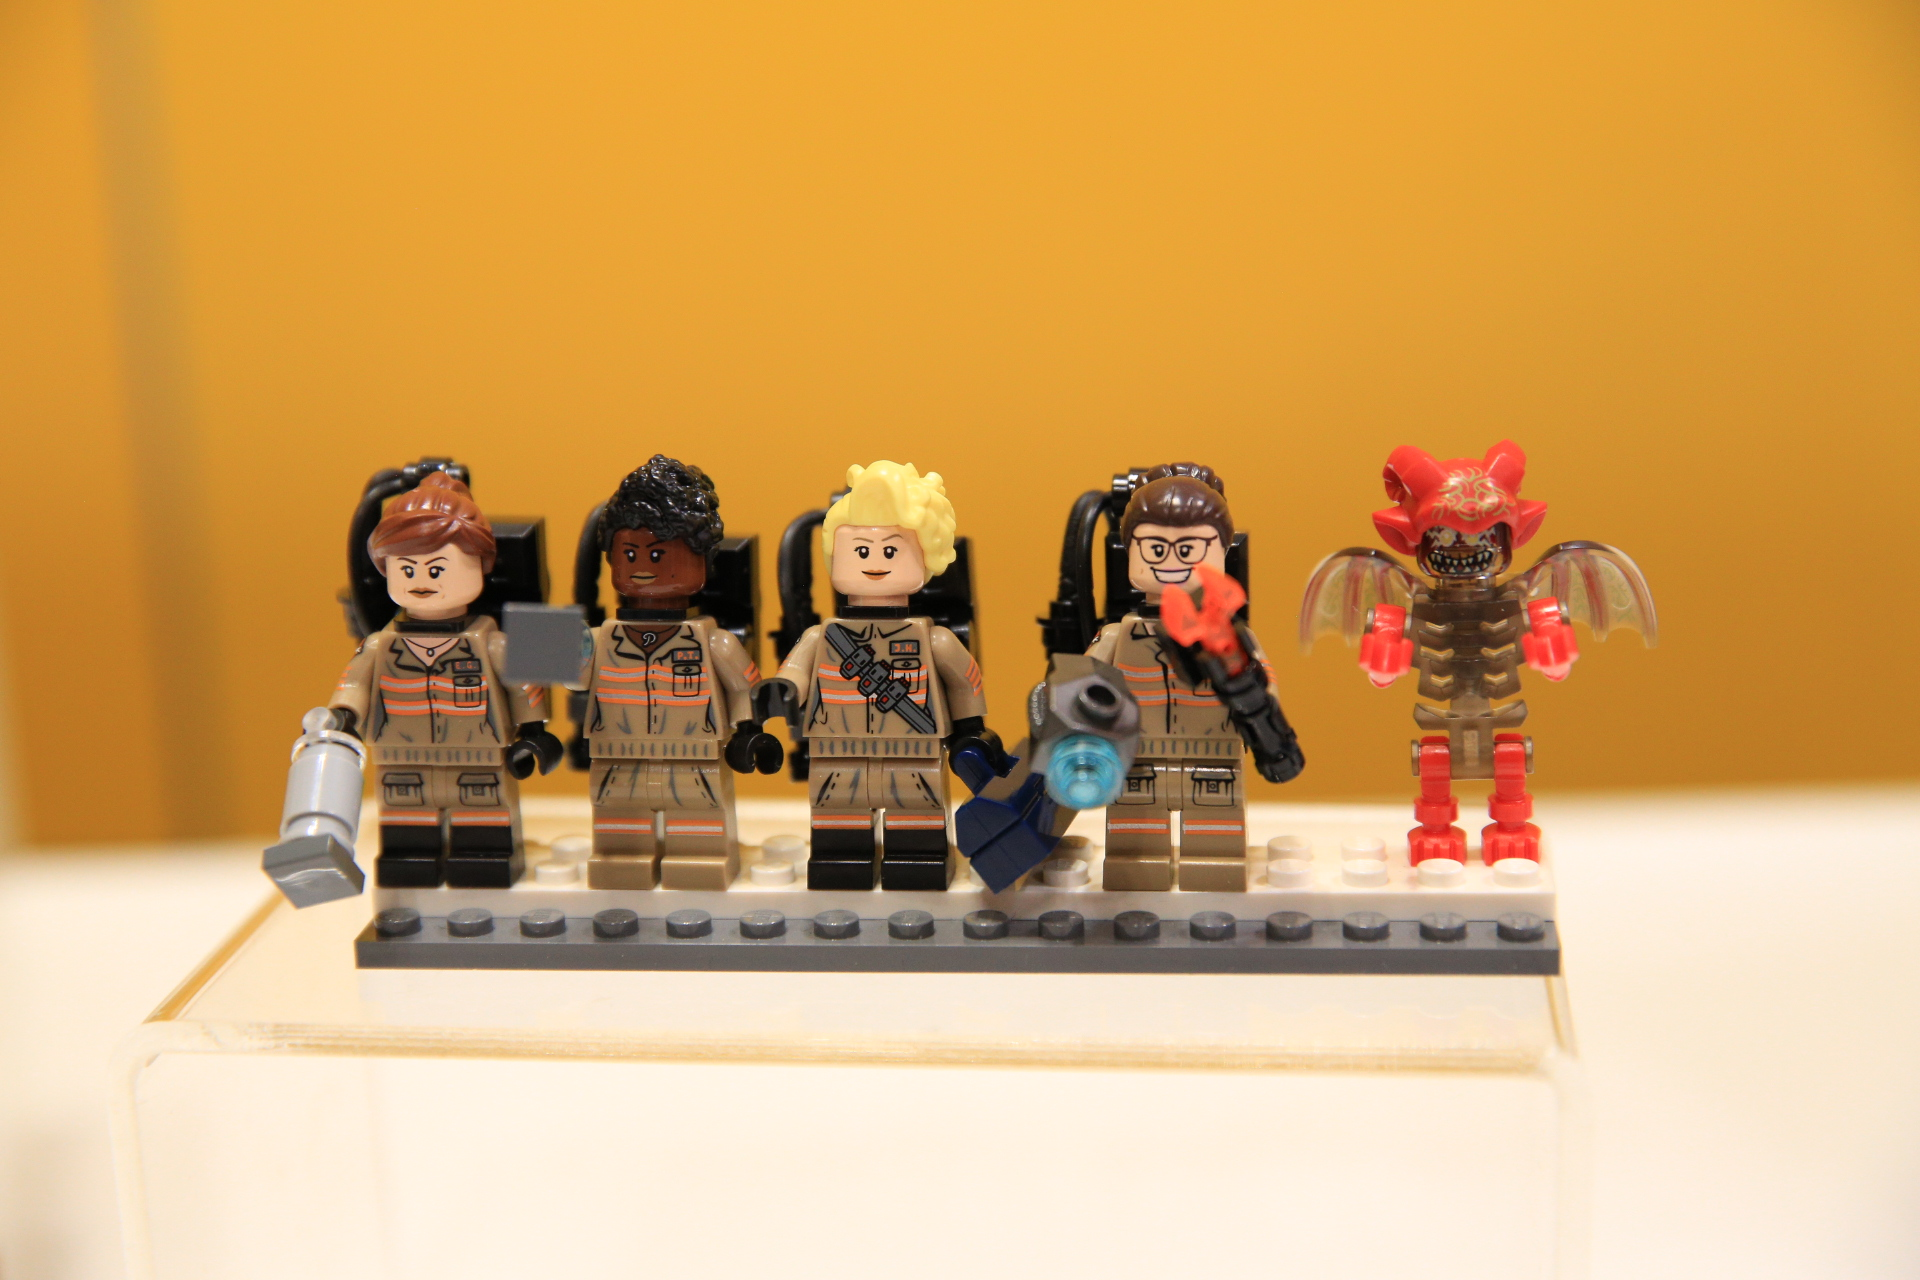 lego 76050 | Search Results | Dunia Pictures